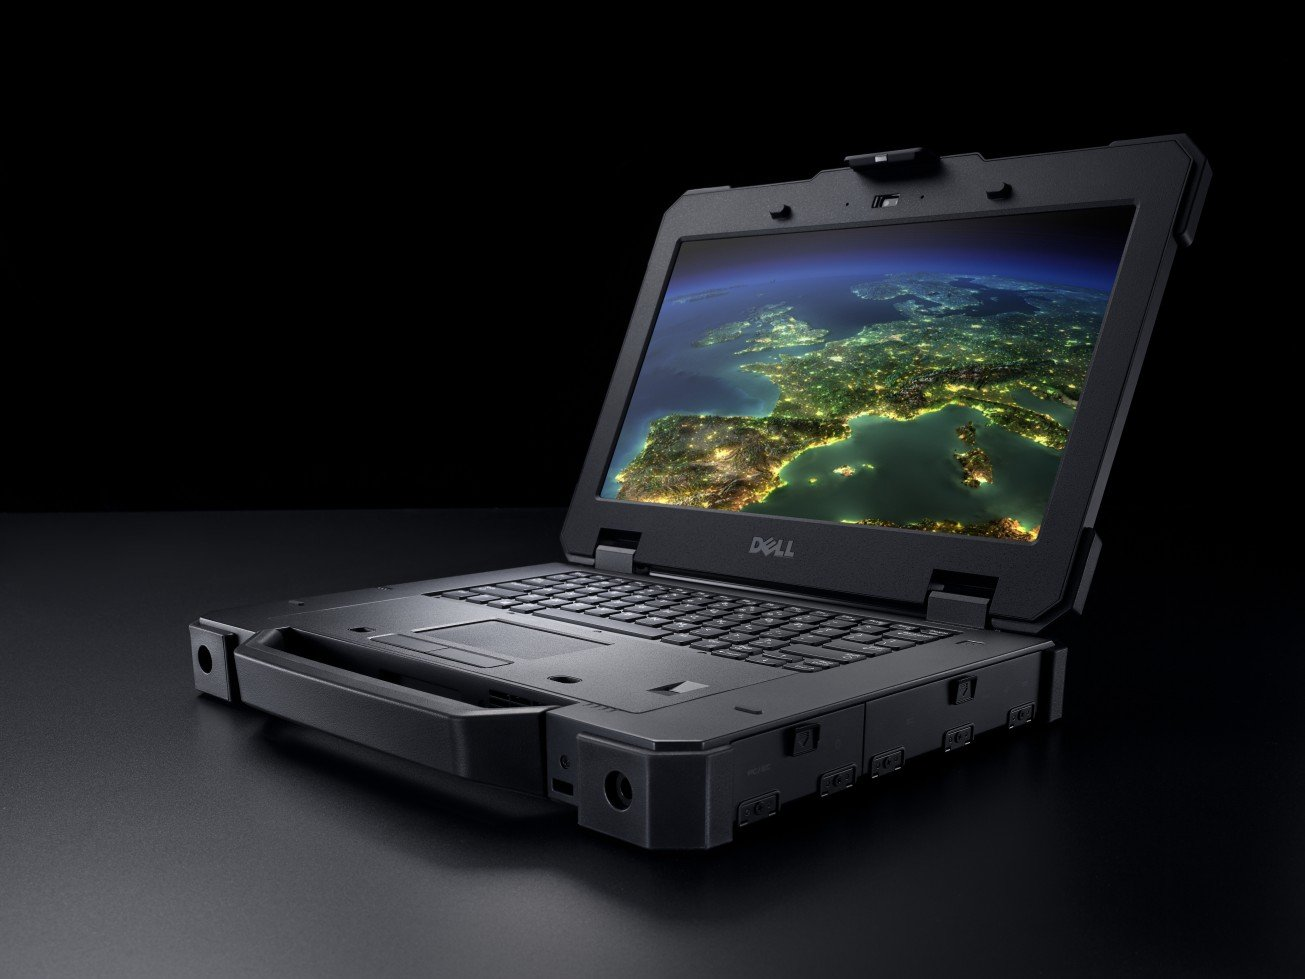 price online available now elitebook computer htm rugged best laptop hp save rug